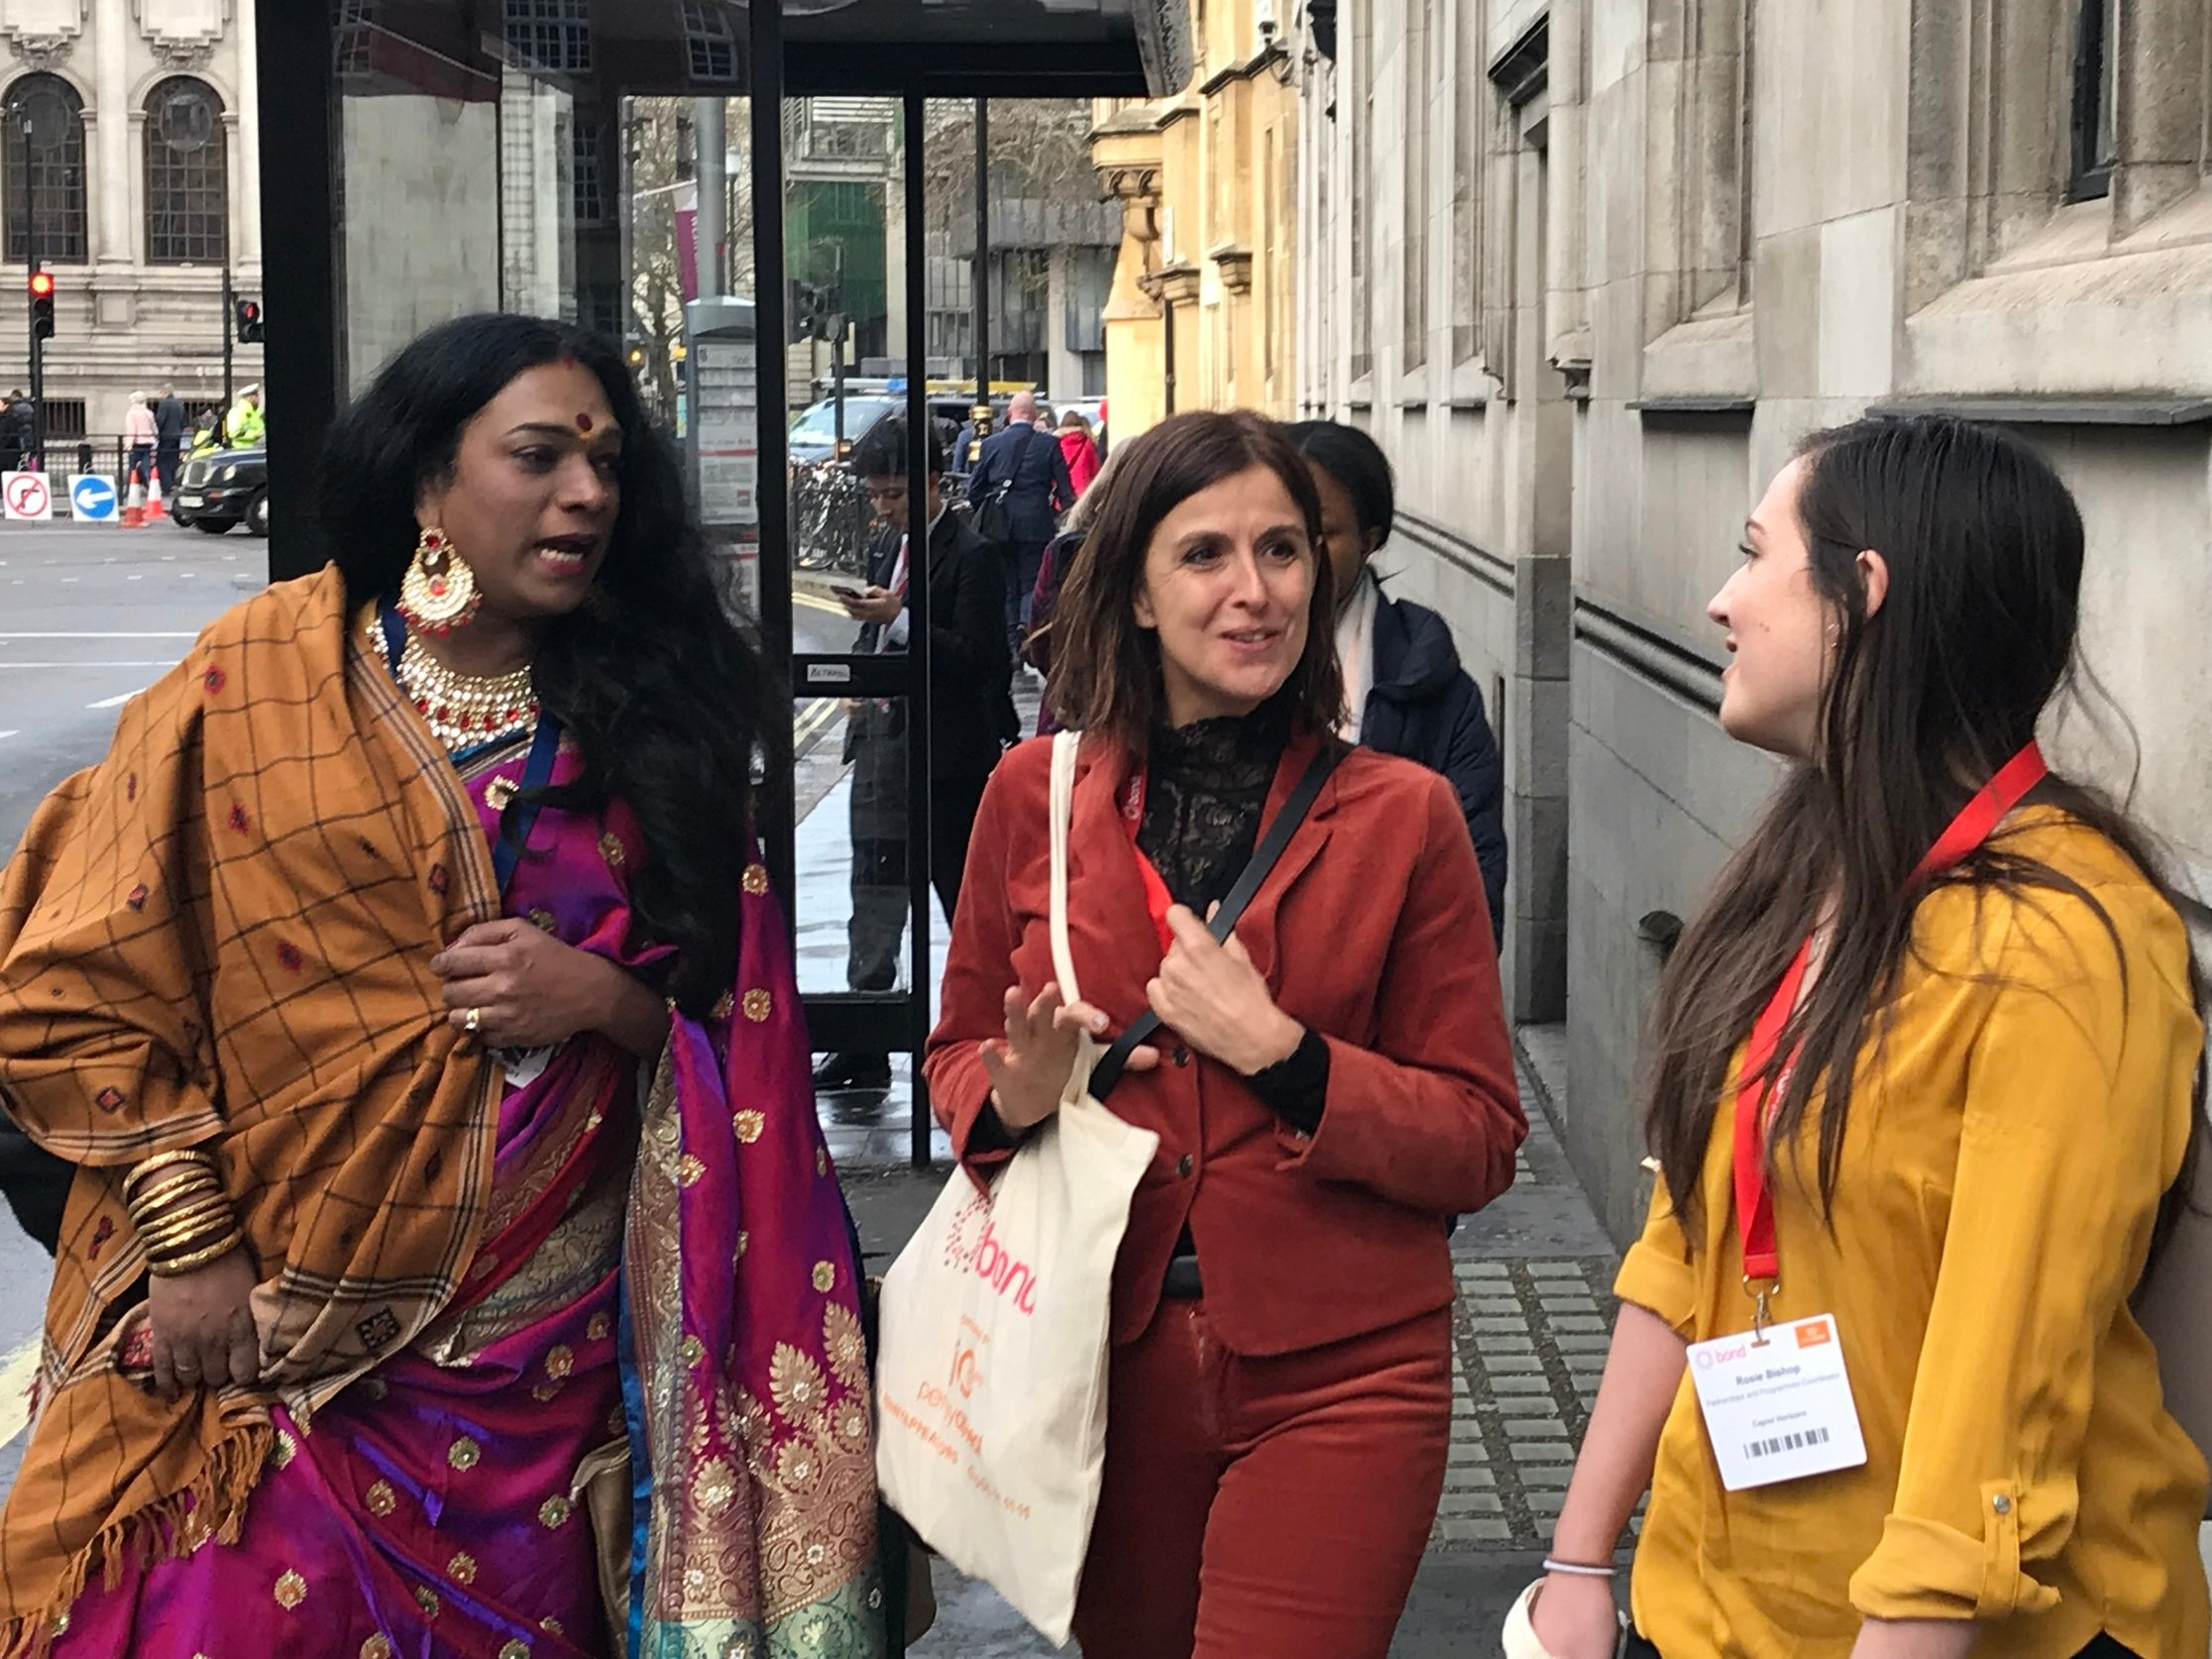 Lorna and Rosie pictured with Abhina Aher, a transgender activist and the keynote speaker of the 2019 Bond conference